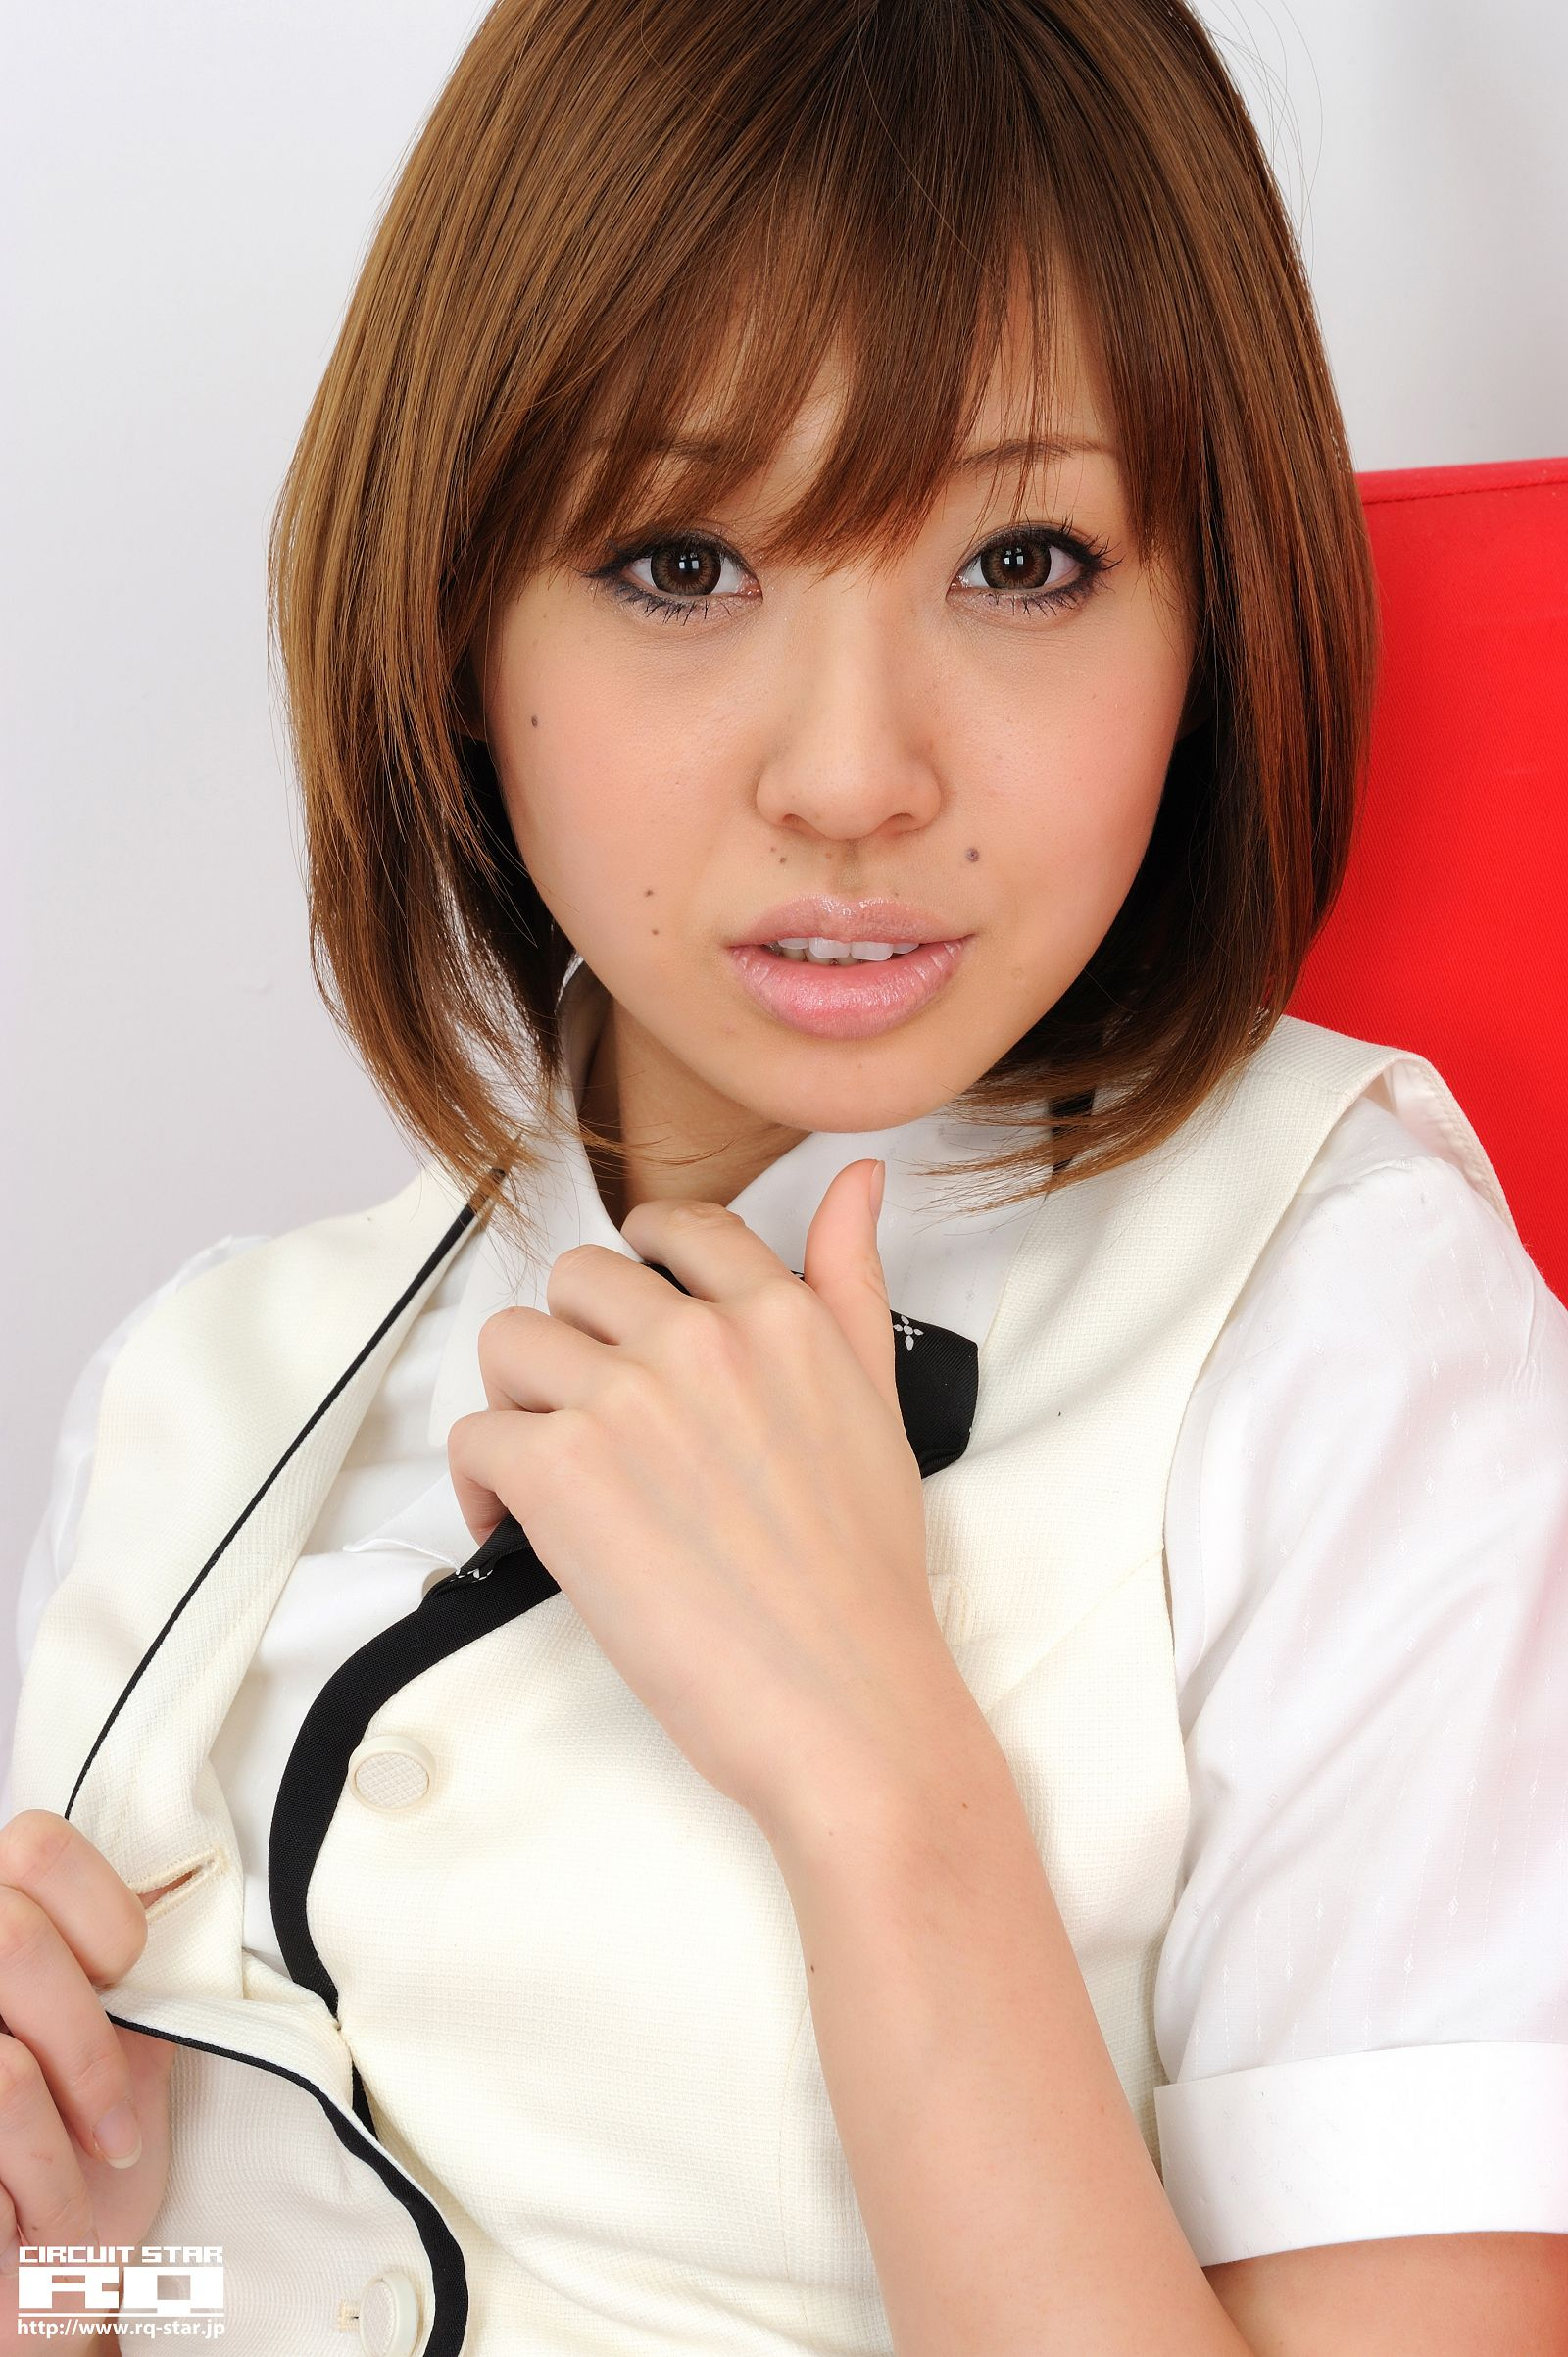 [RQ STAR美女] NO.00454 Sayuri Kawahara 河原さゆり Office Lady[101P] RQ STAR 第4张